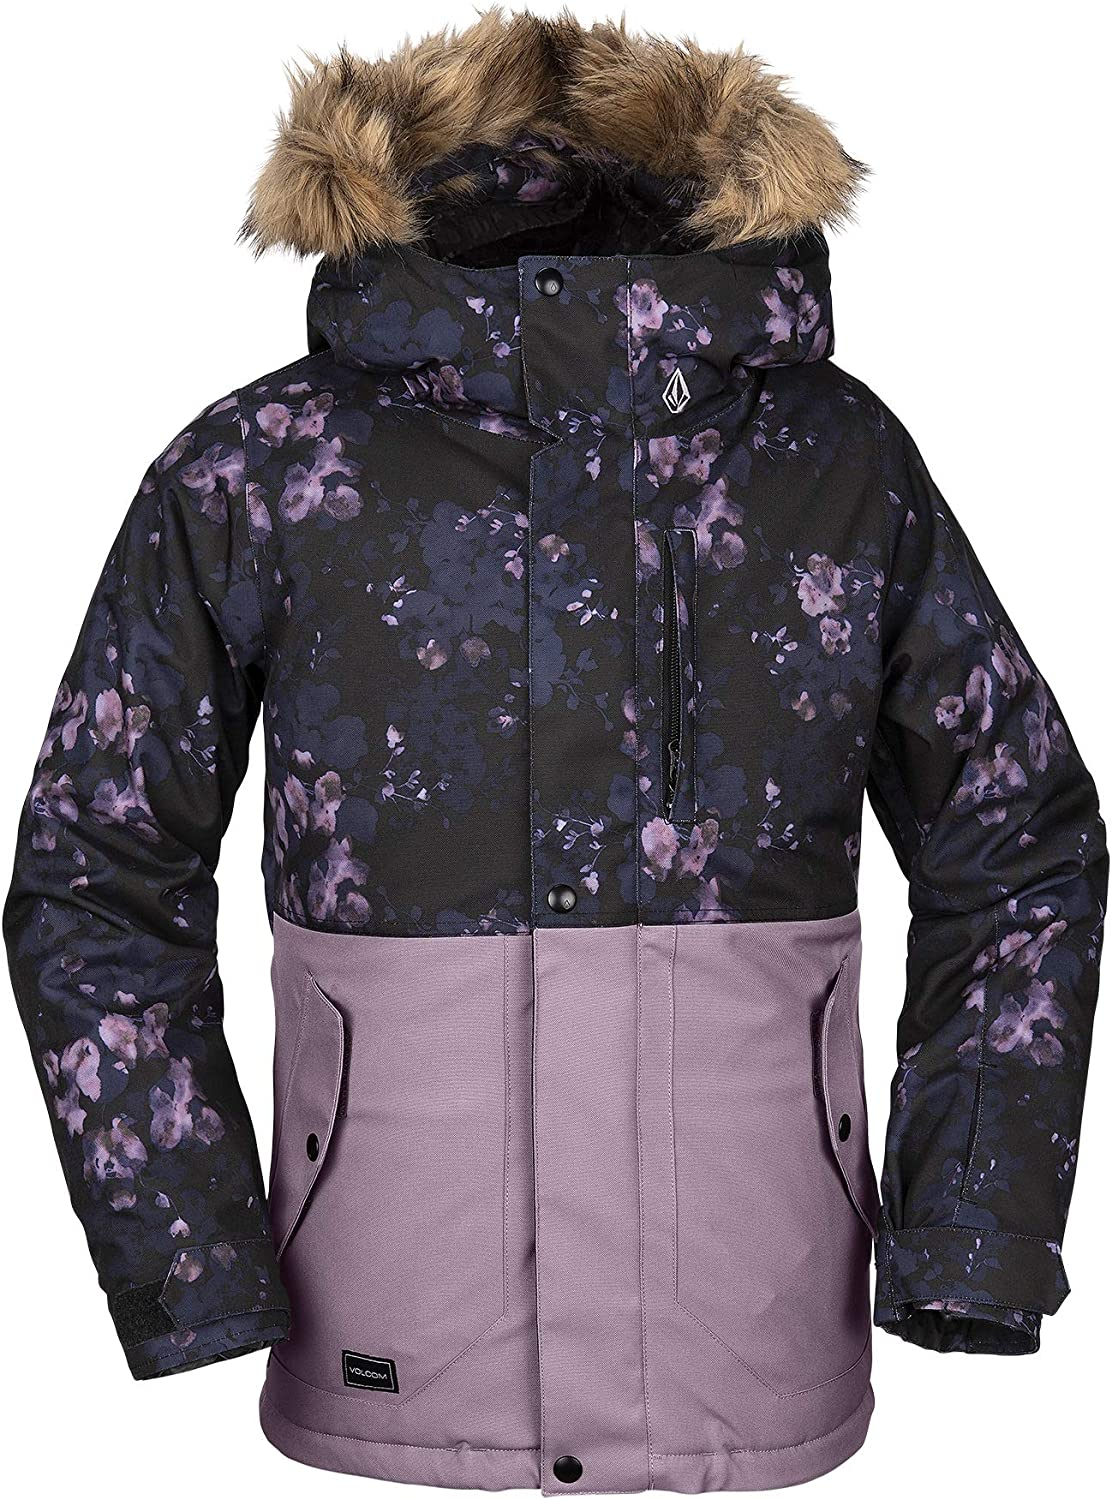 Volcom Big Girl's So Max 74% OFF Minty Snow Jacket Insulated Brand new